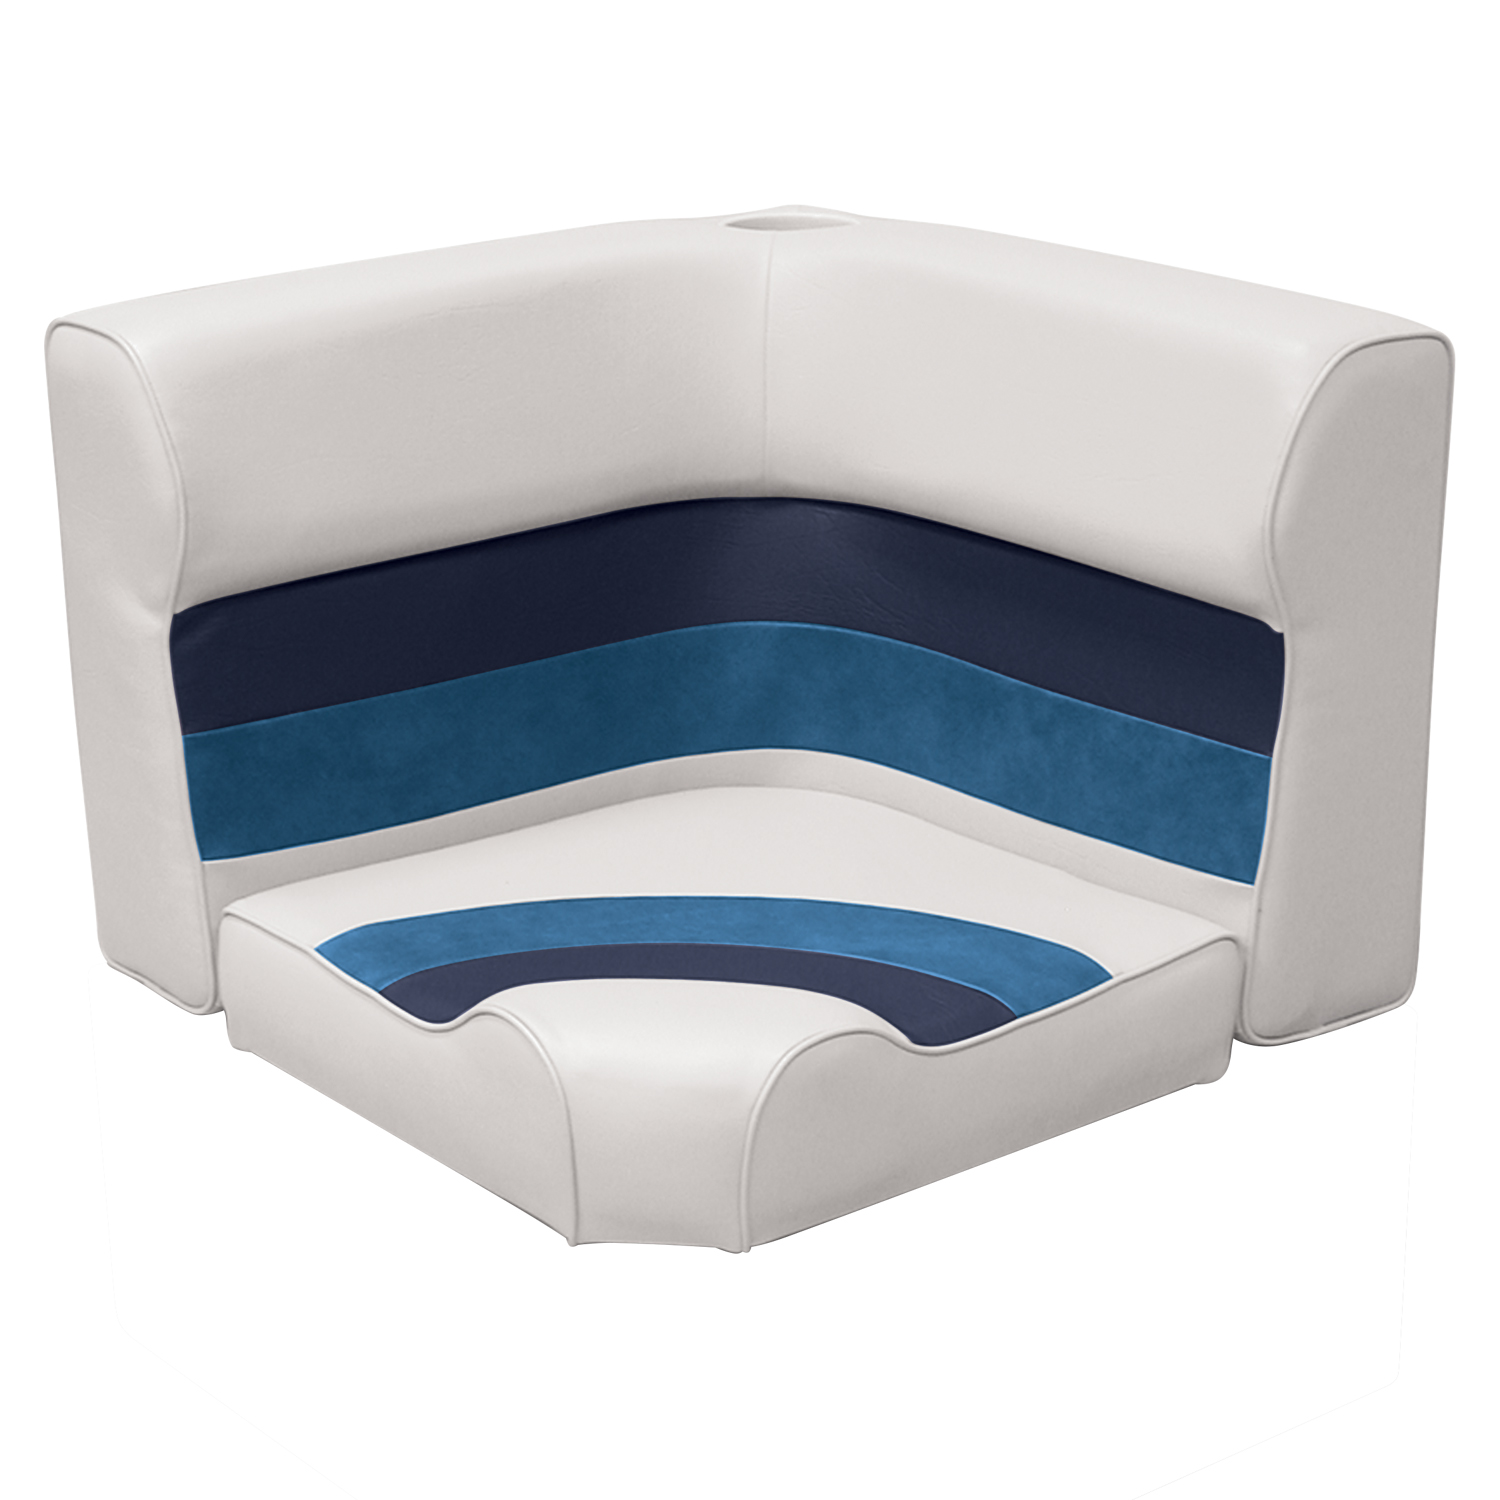 The Wise Company Inc 8WD108-1011 Corner Lounge Seat Right Grey//Navy//Blue Inc 46 The The Wise Boat Company